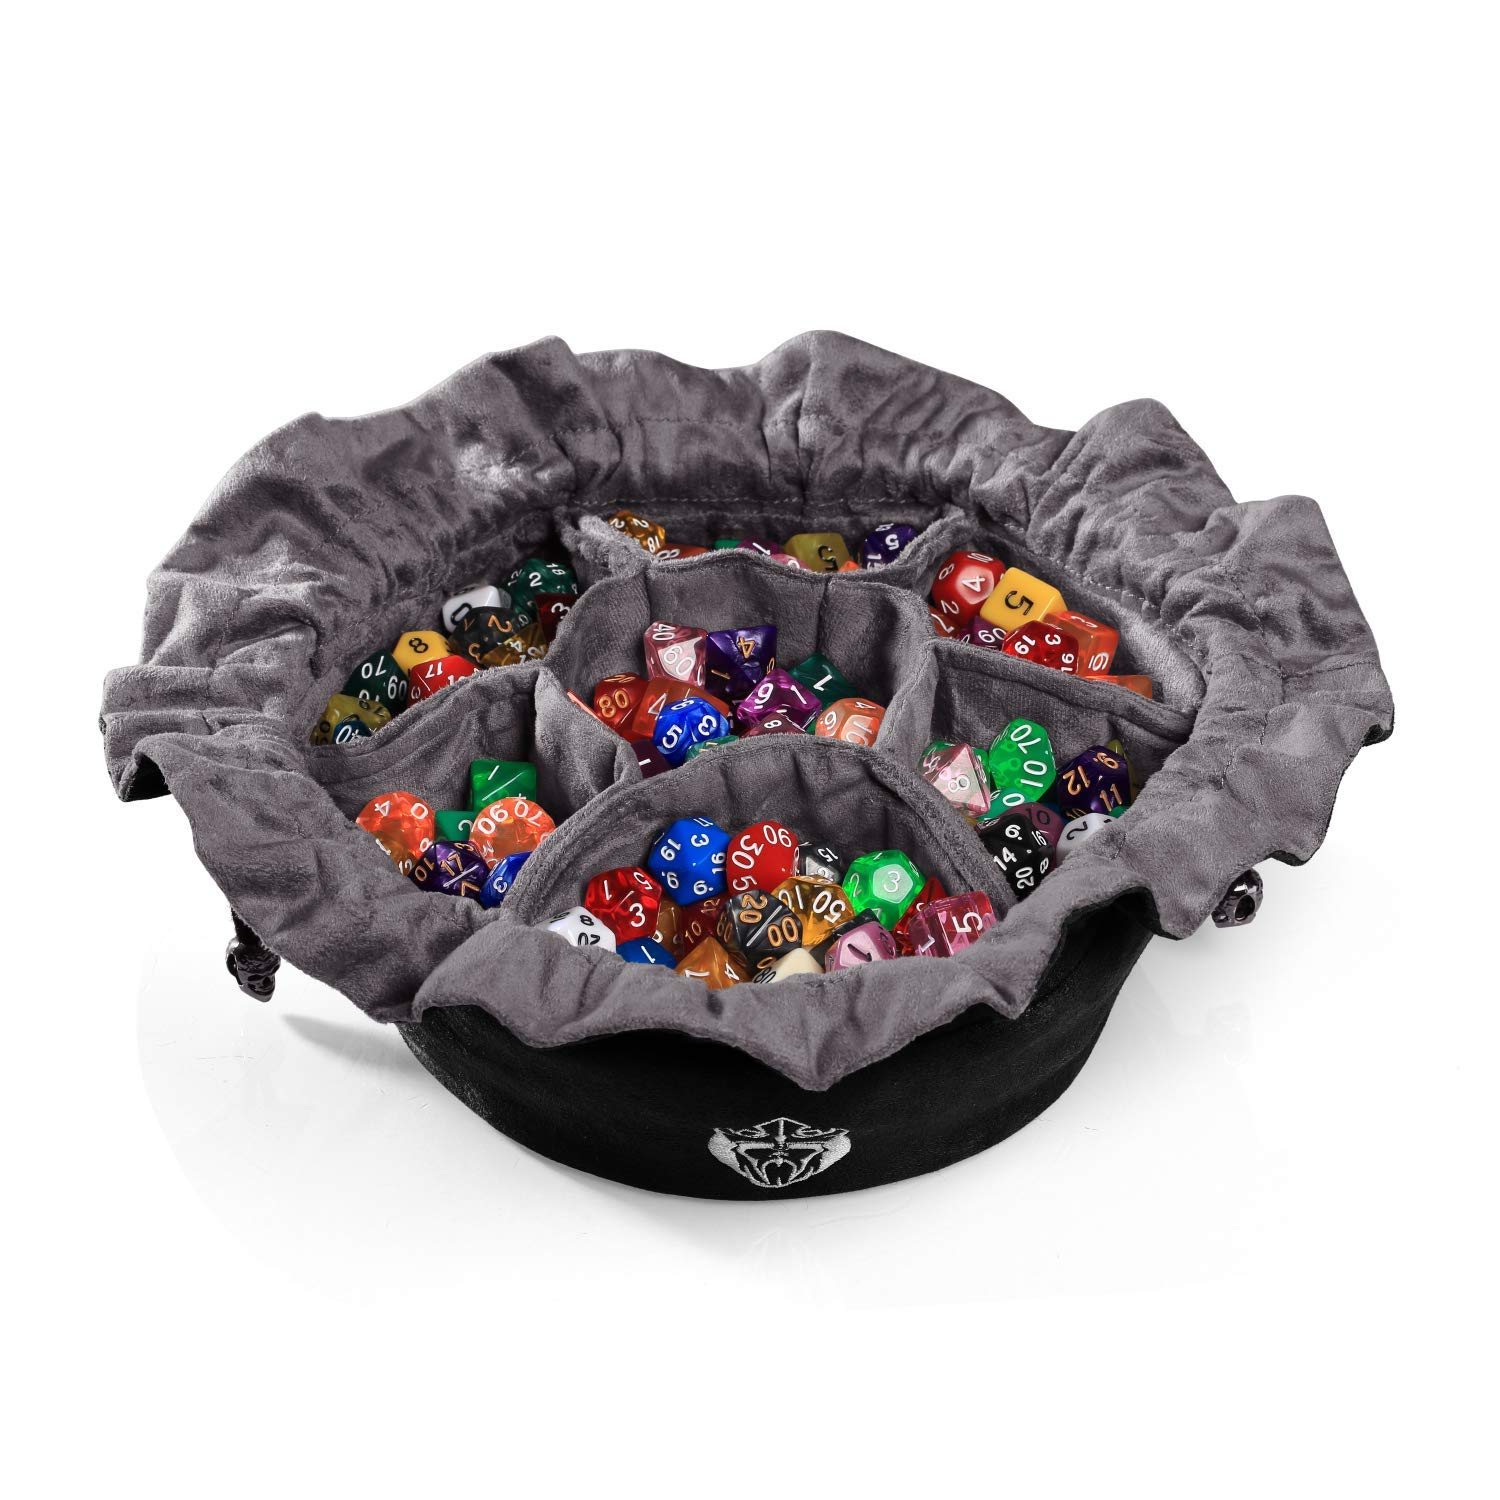 CardKingPro Immense Dice Bags with Pockets - Black - Capacity 150+ Dice - Great for Dice Hoarders by CardKingPro